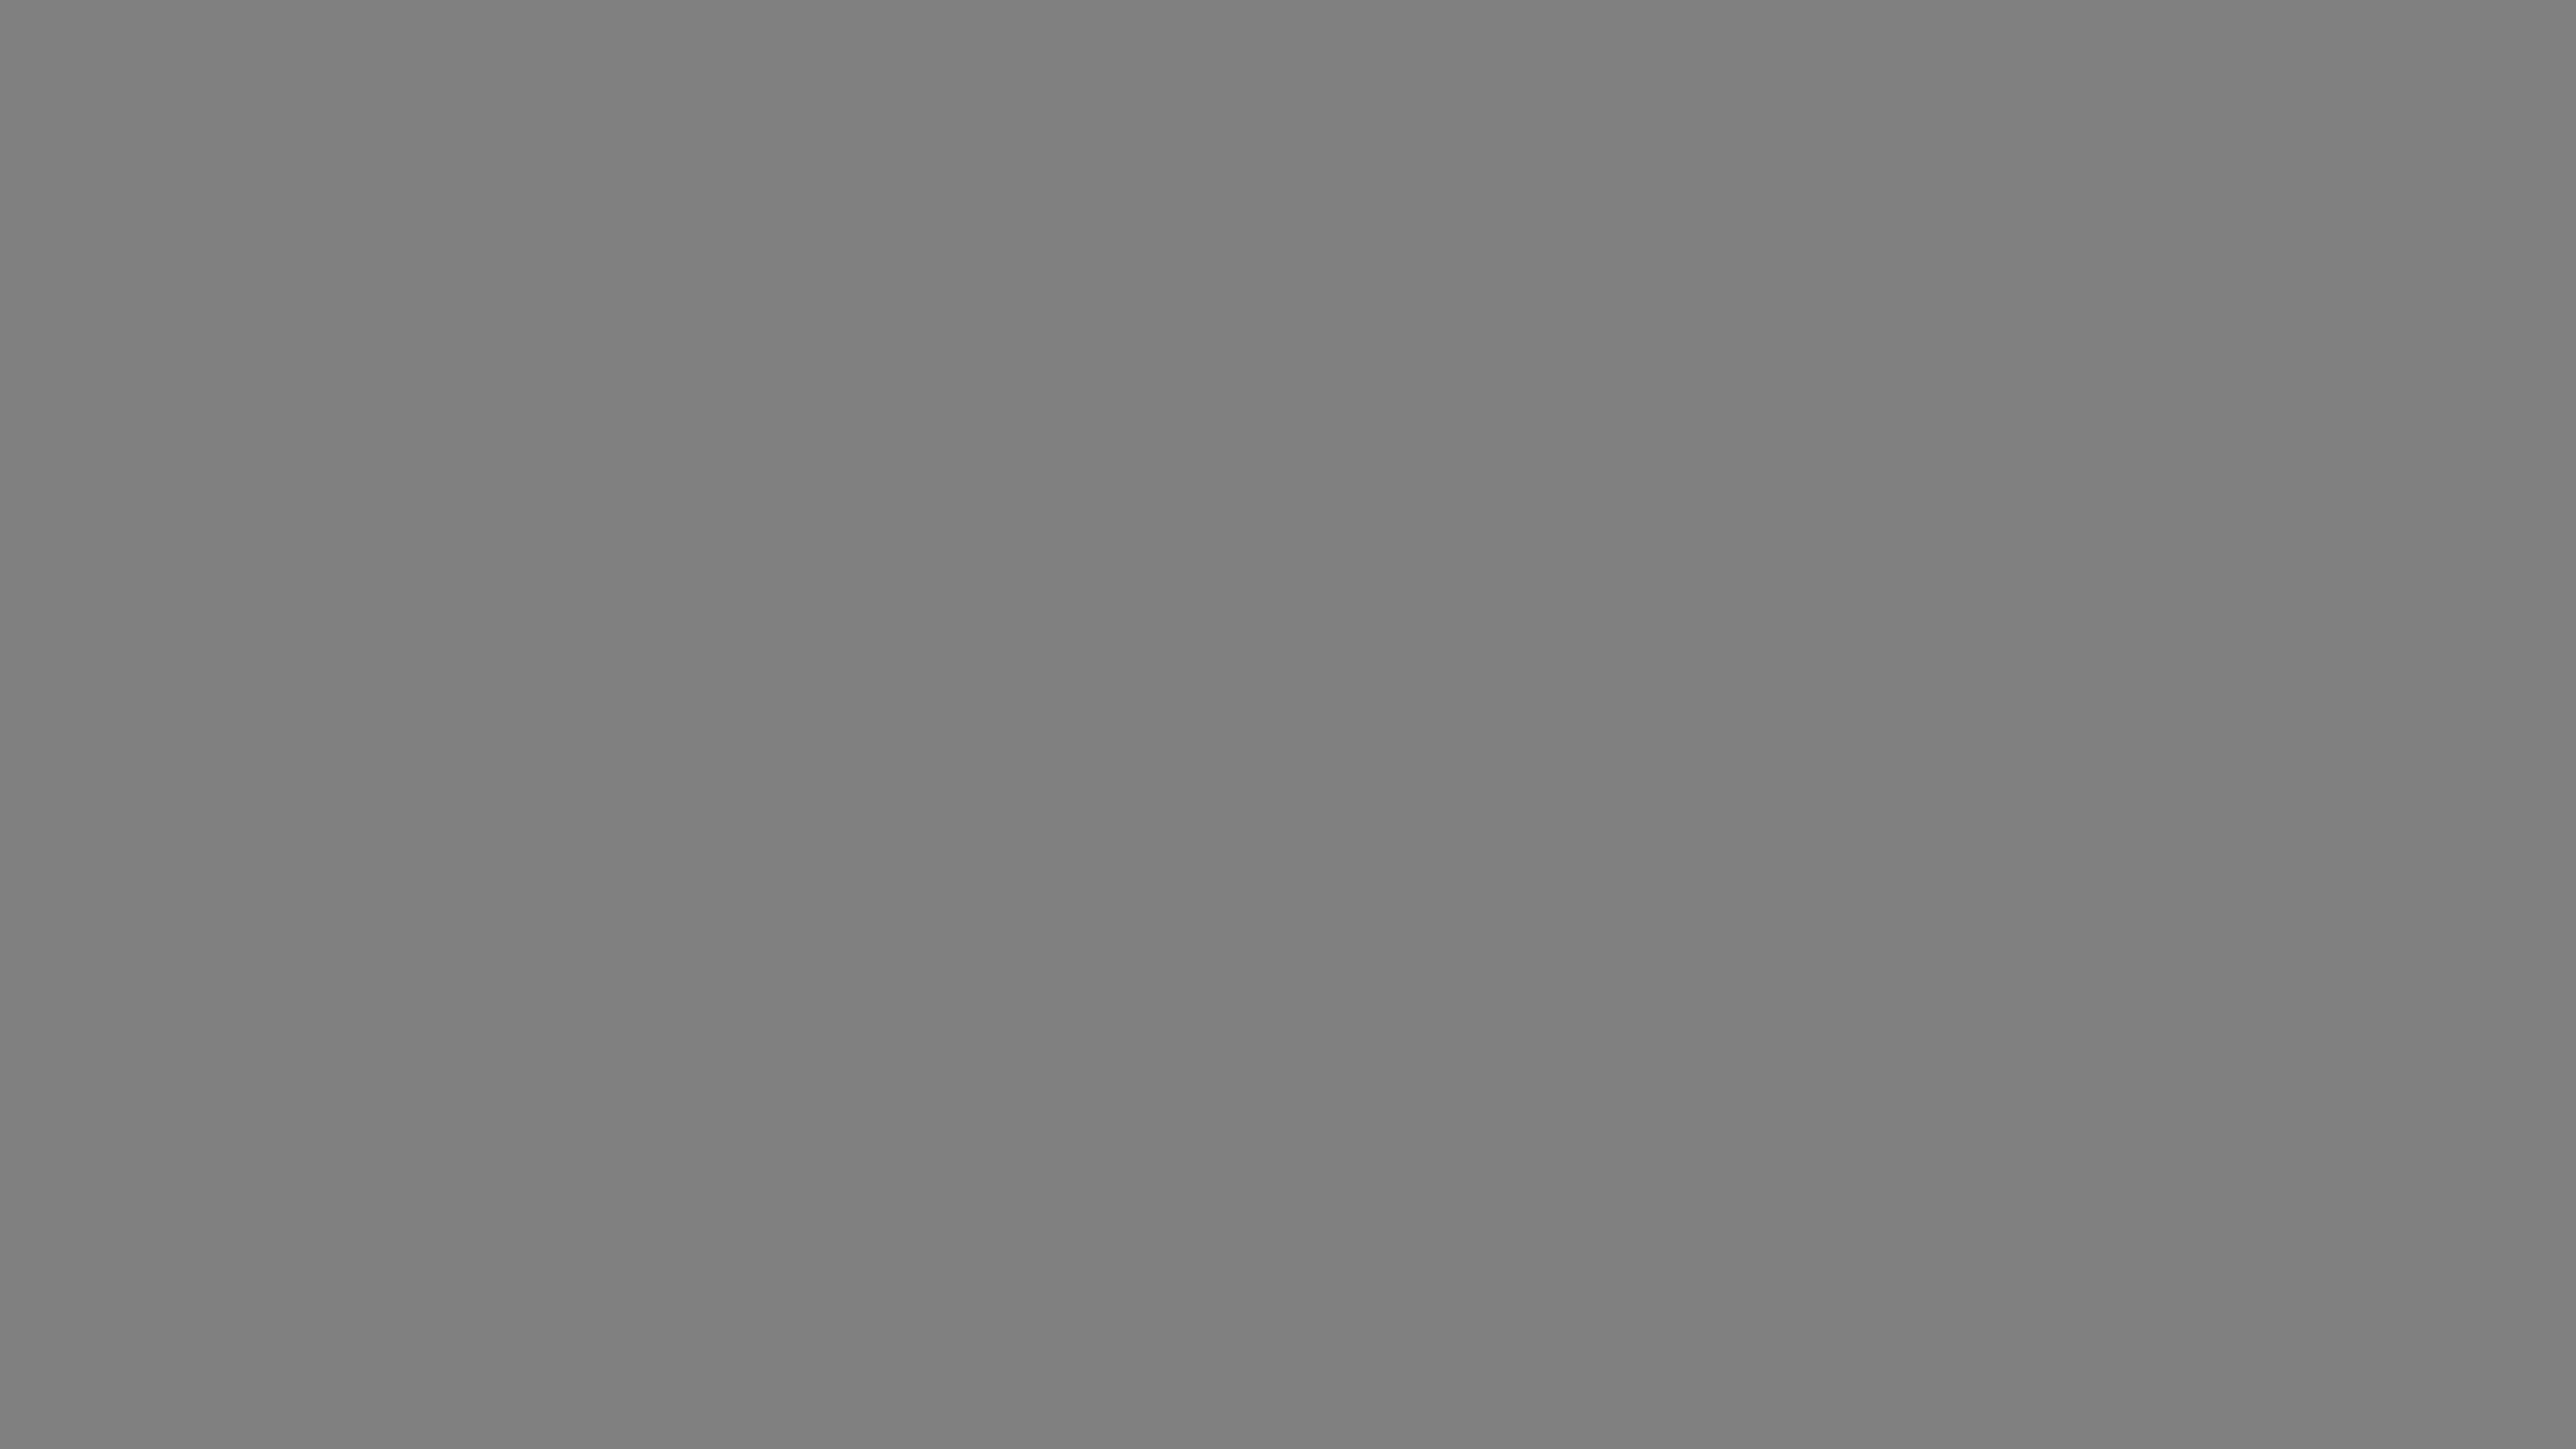 3840x2160 Gray Solid Color Background